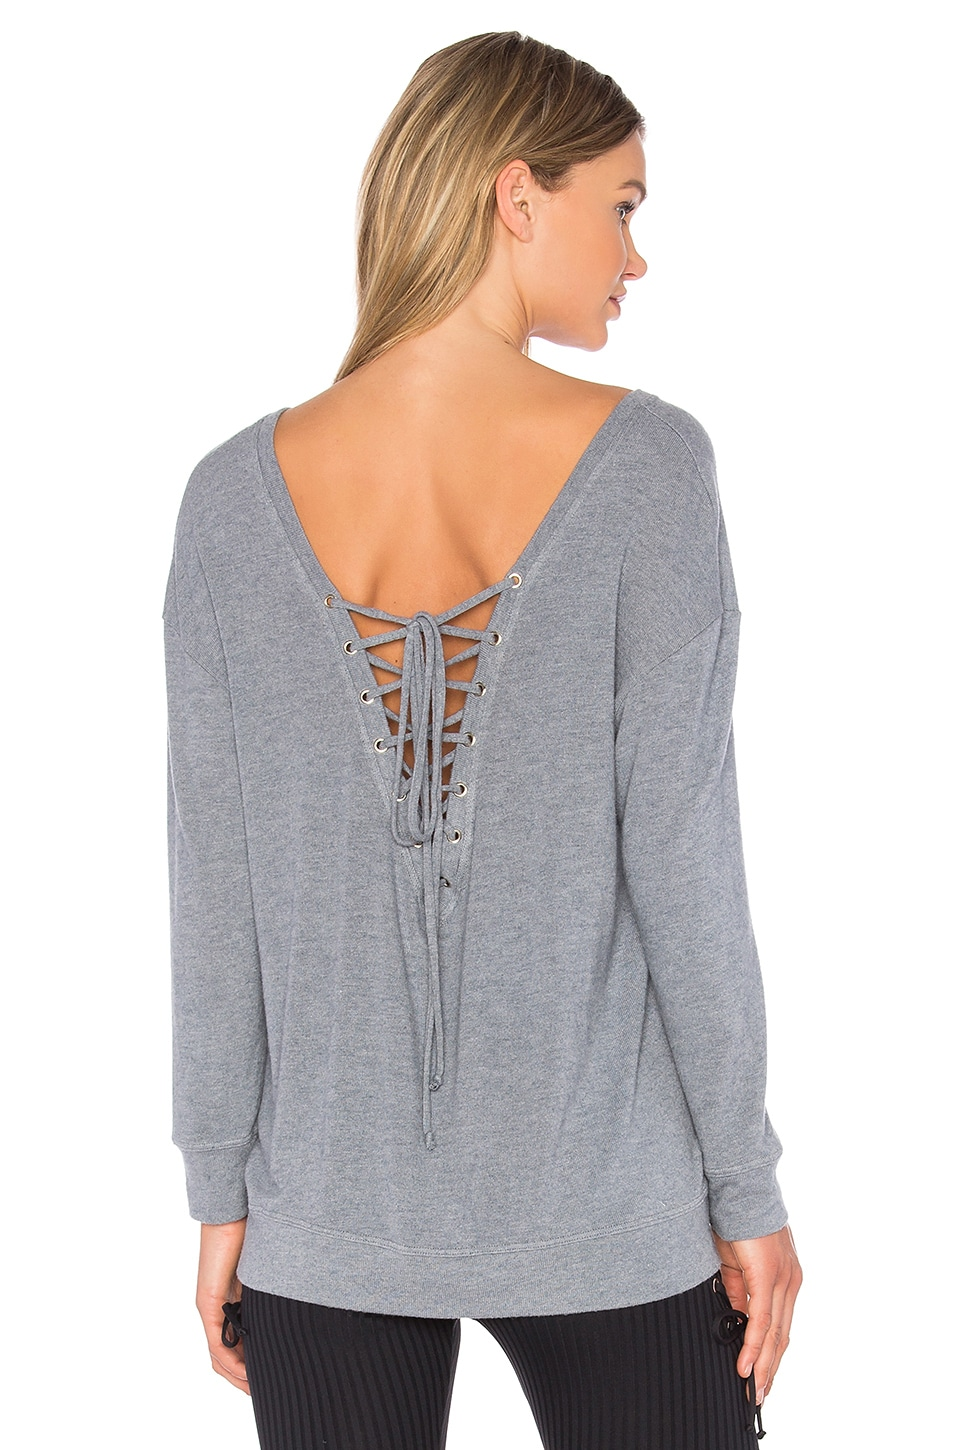 Blue Life Fit Tied Up Sweatshirt in Slate